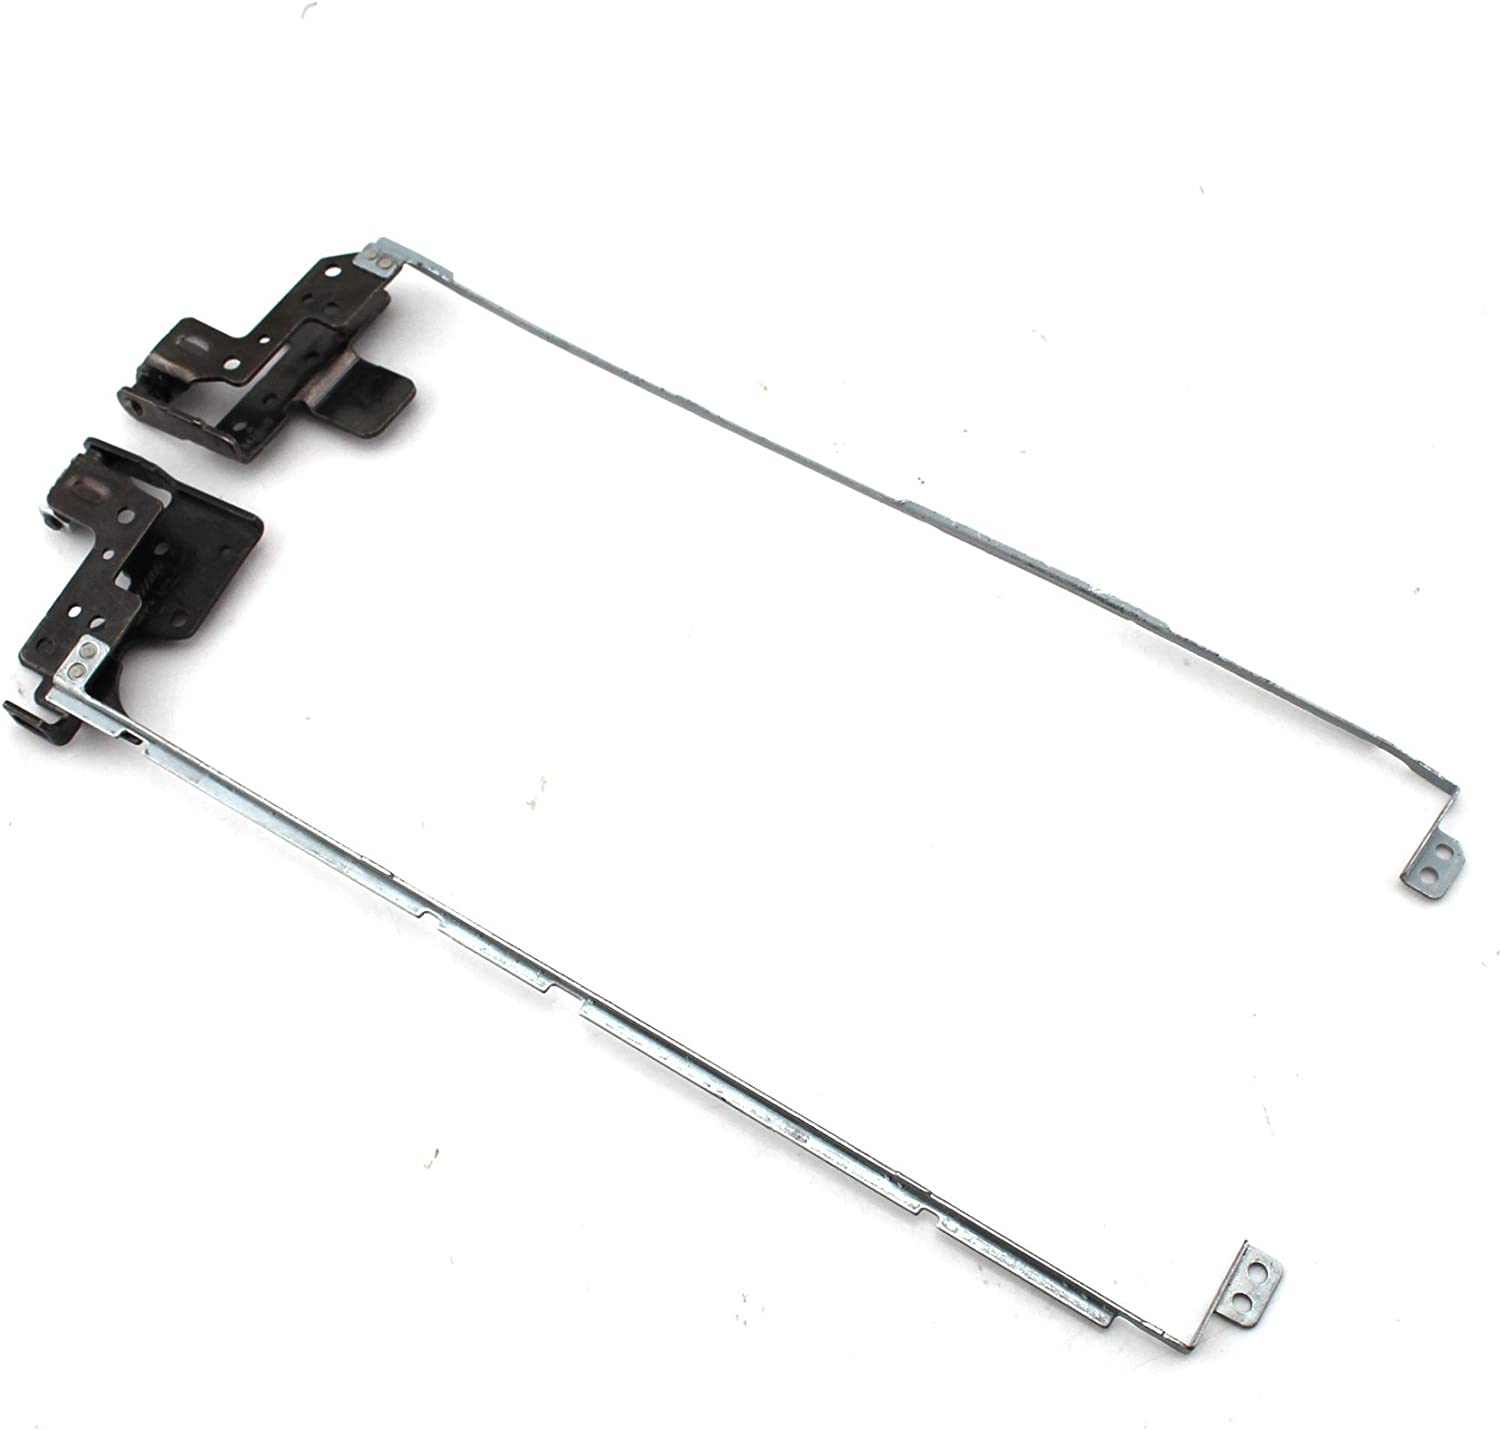 Right Laptop LCD Hinges//Hinge For HP 15G 15-G0 15R 15-R0 Series Replacement Part Number 749655-001 Generic New Left